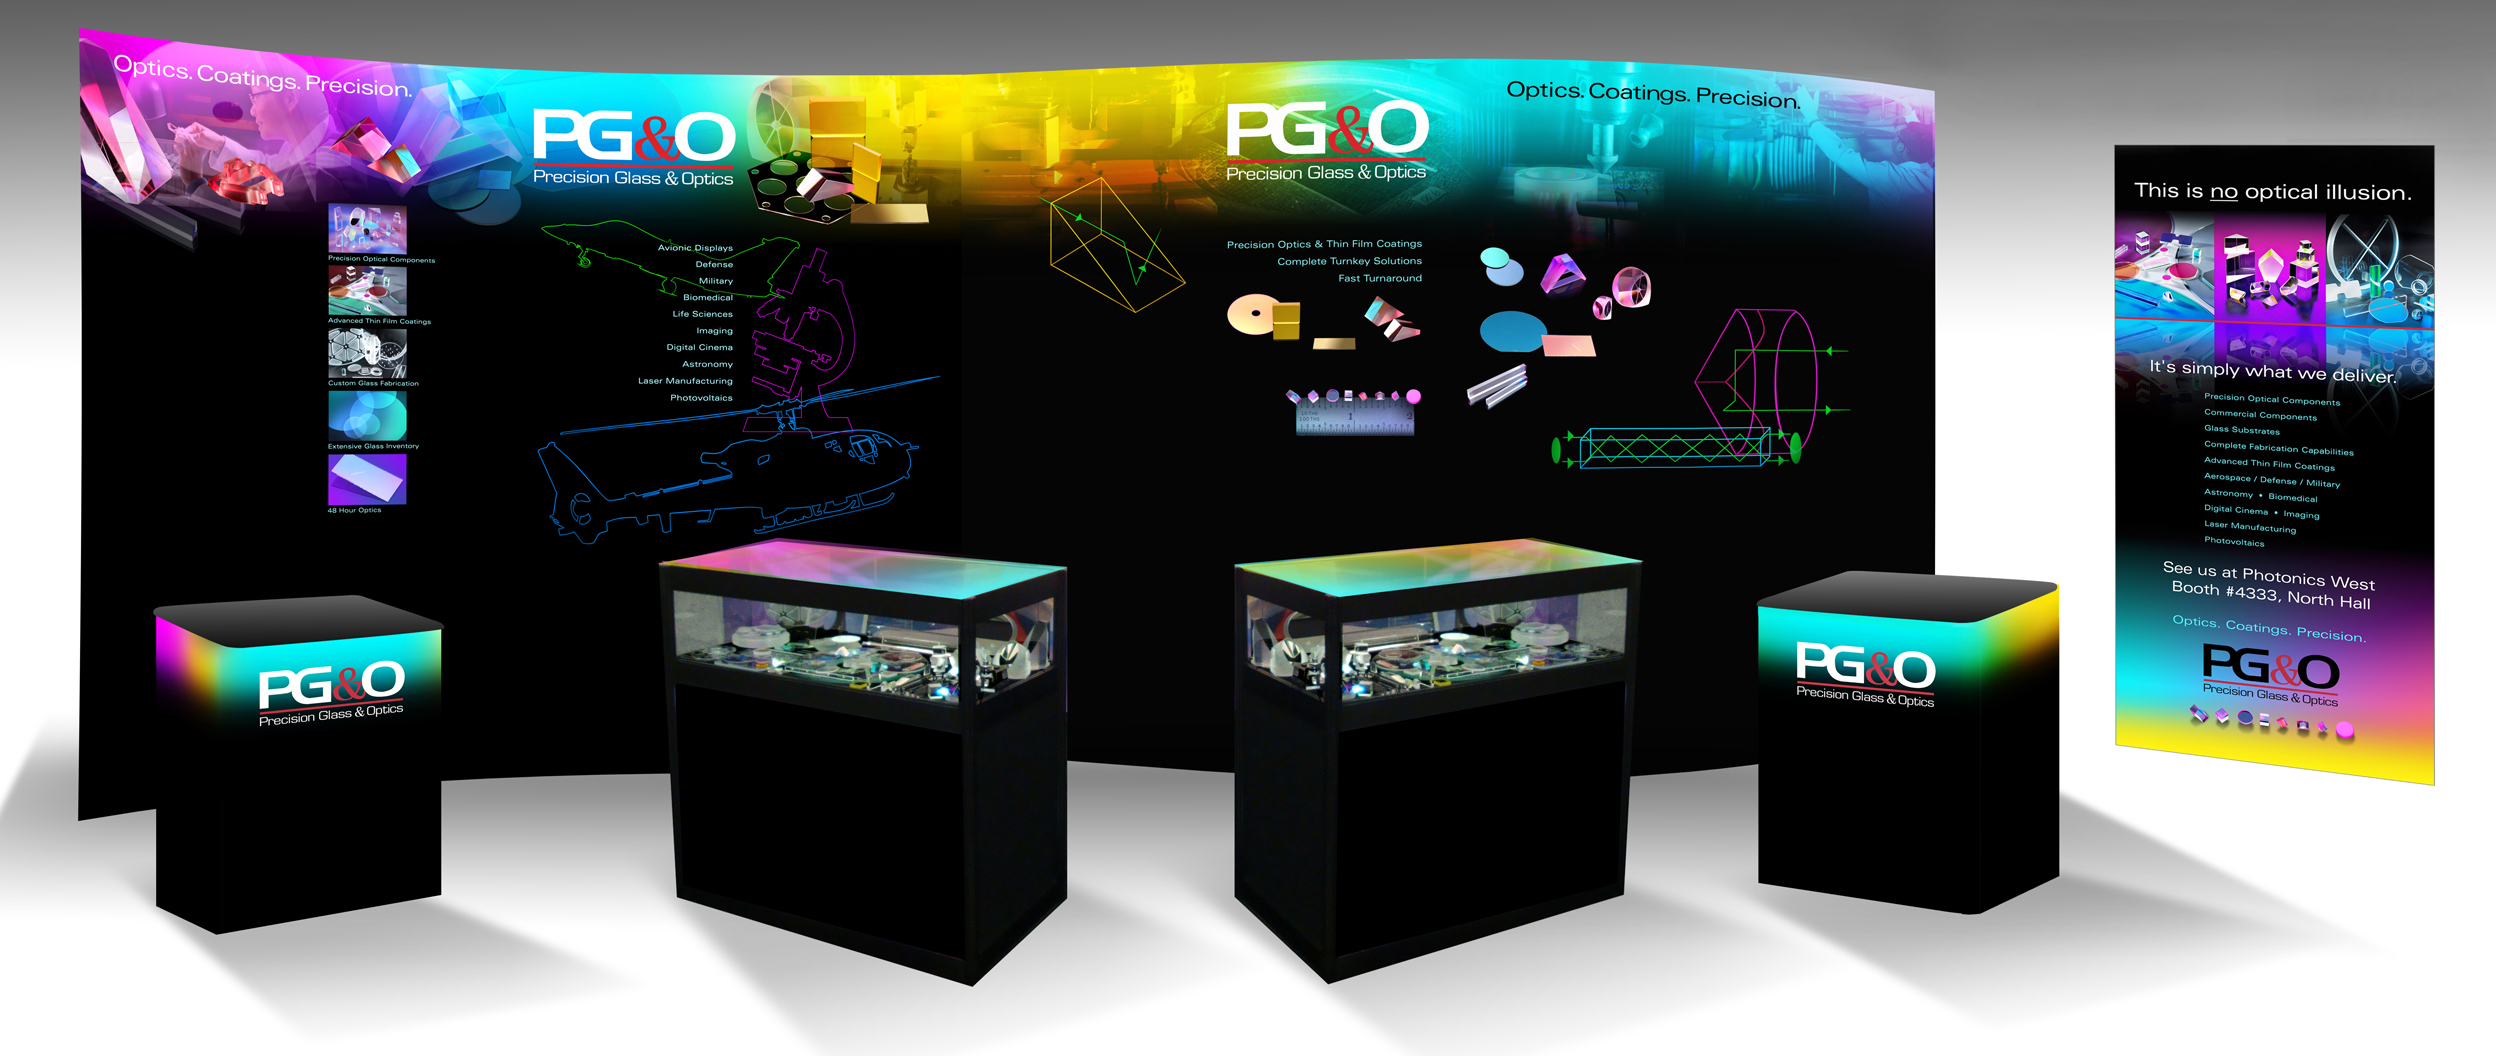 PG&O Trade Show Booth Displays Thin Film Coatings, Optical Fabrication, Glass Substrate Inventory